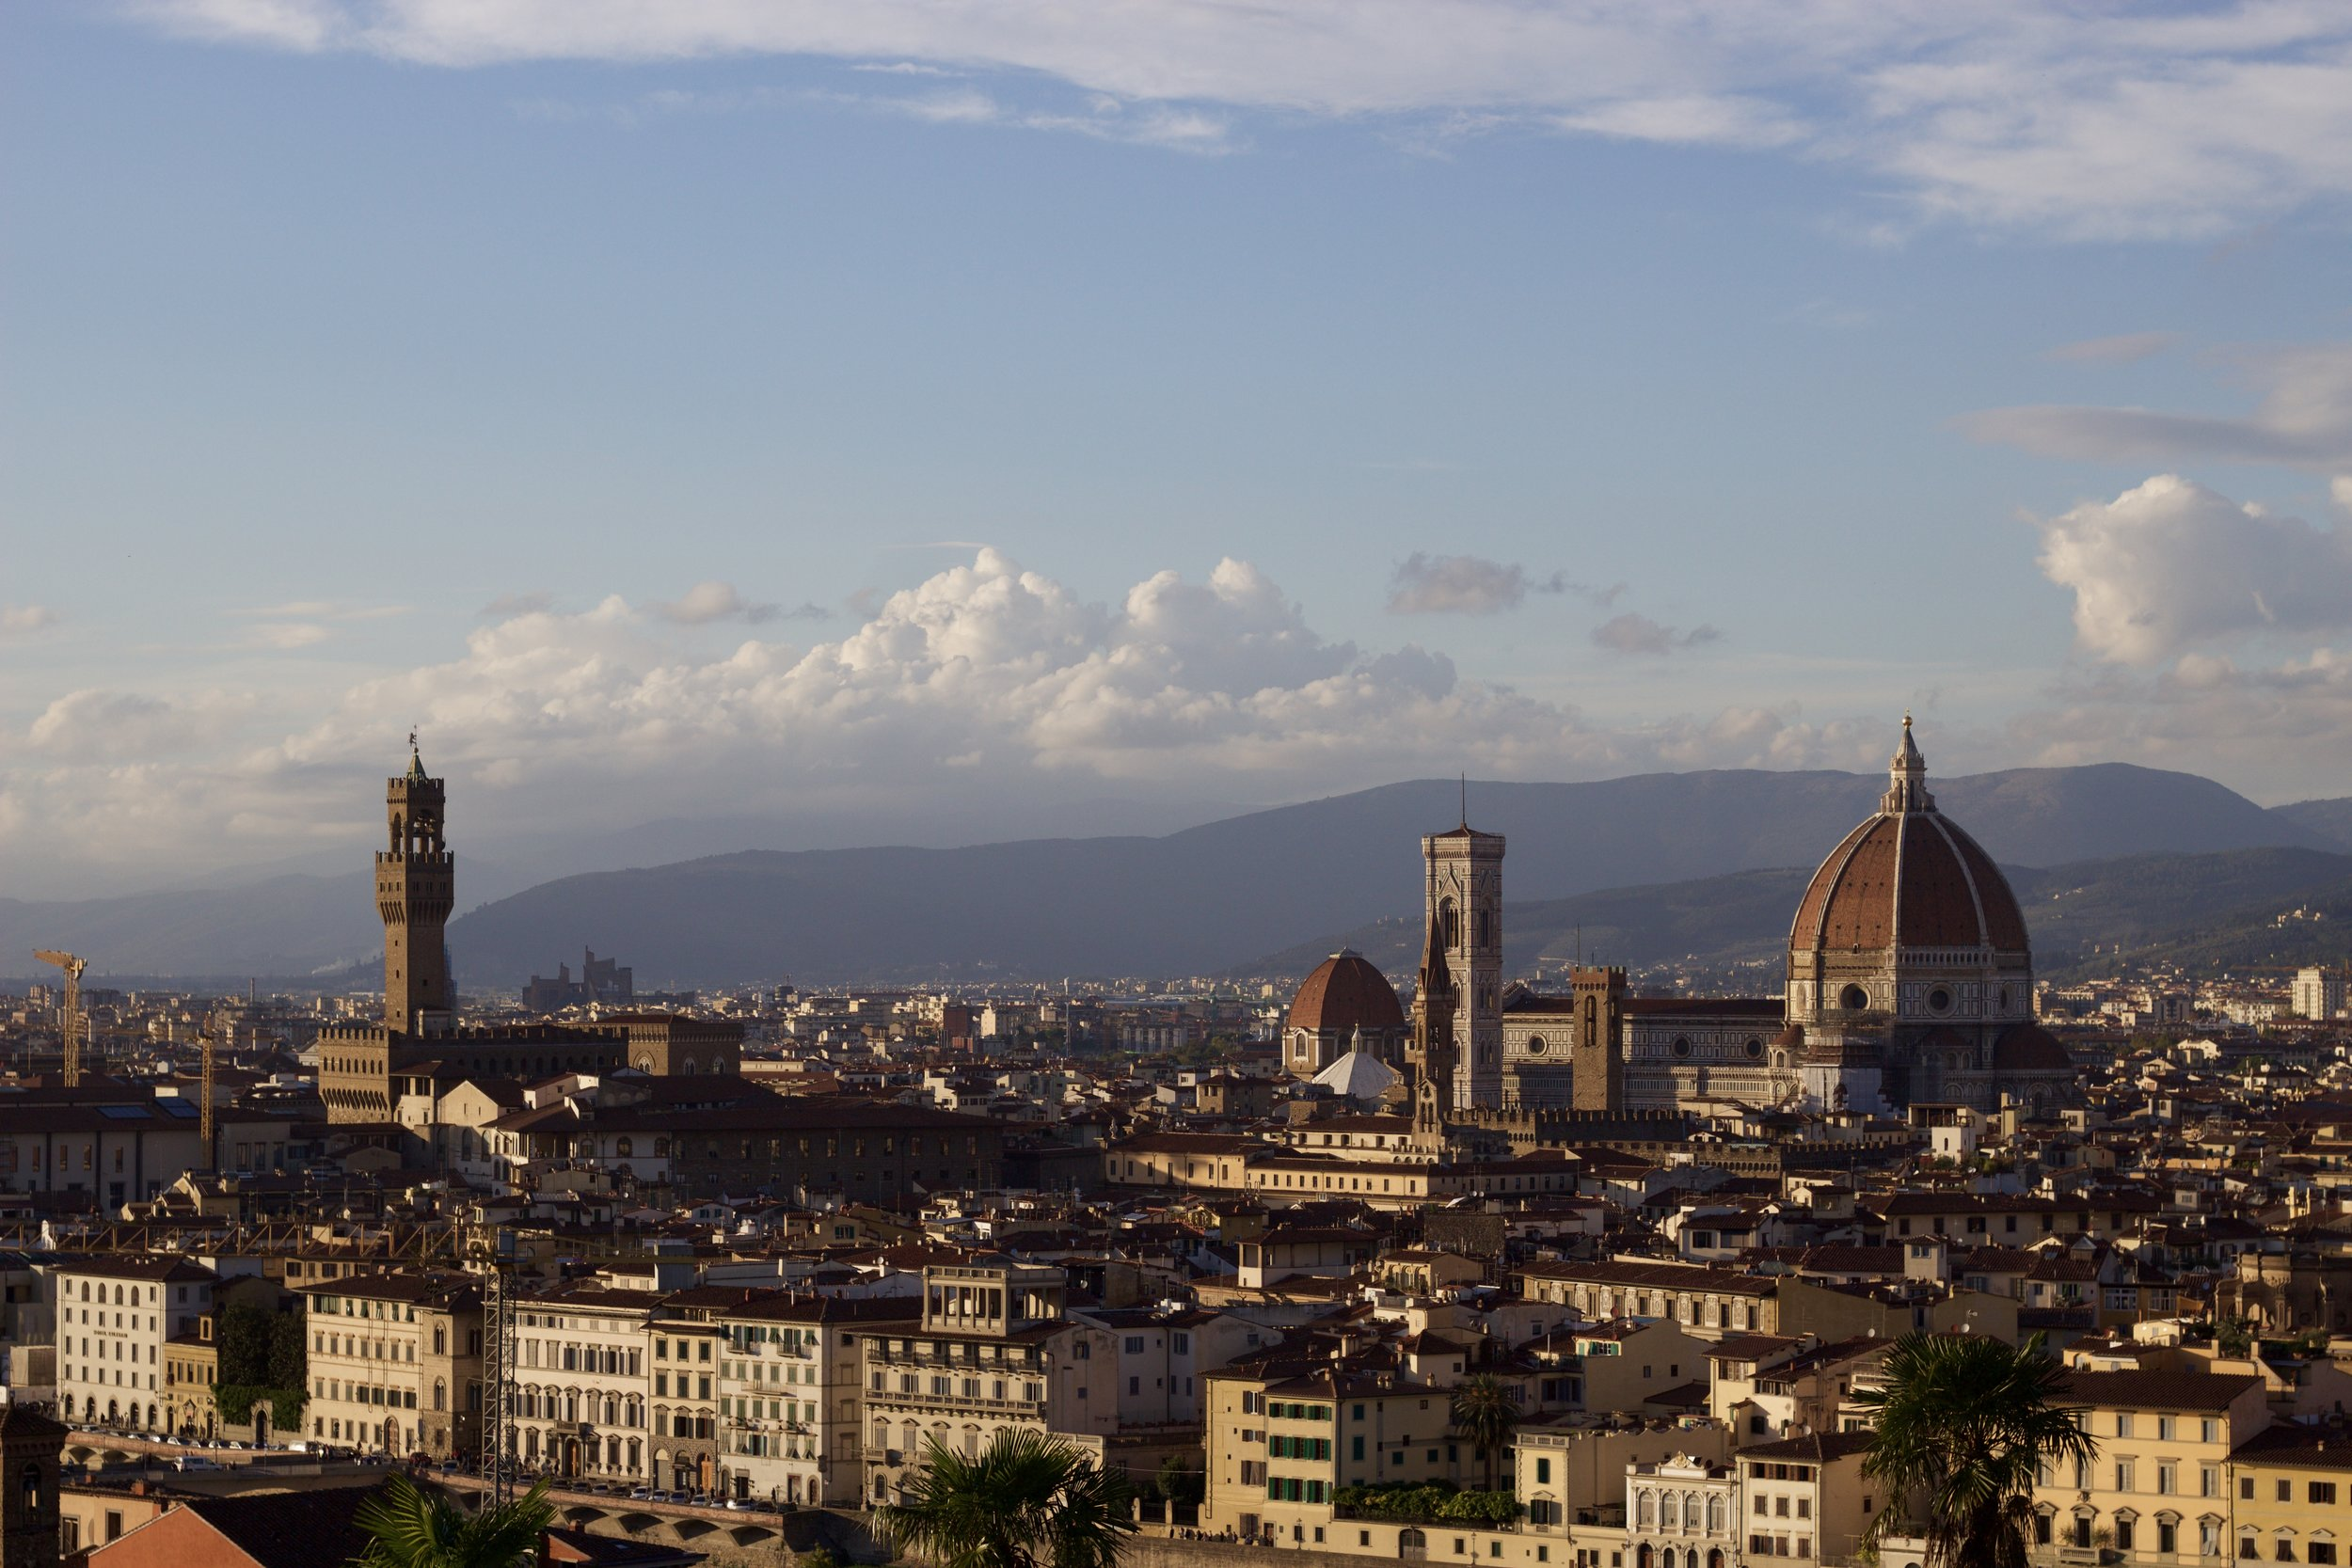 Samantha McNeil Blog - View from the Piazzale Michelangelo